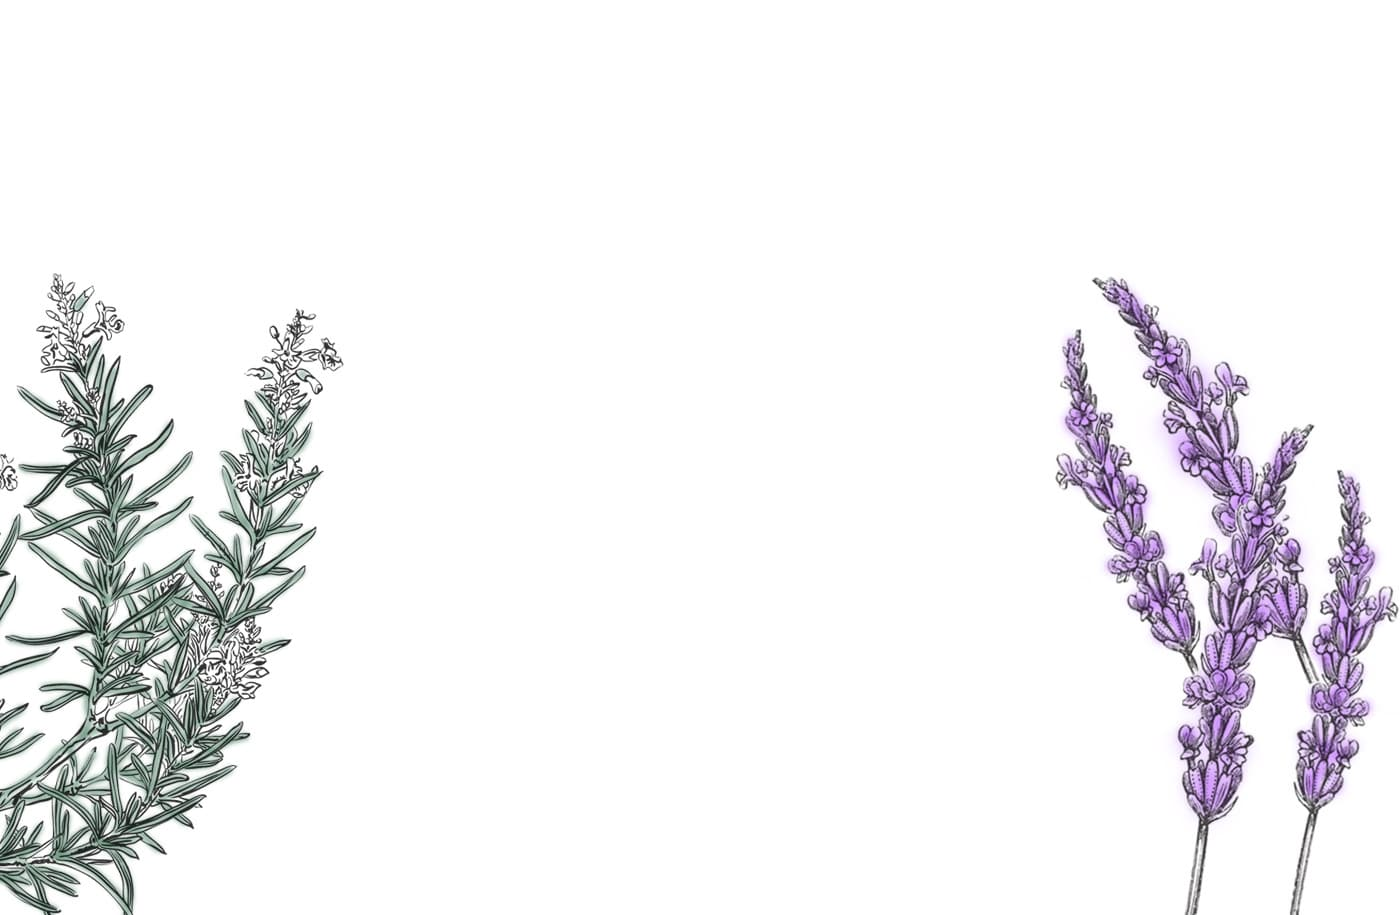 Wellbeing-rosemary-lavender-background